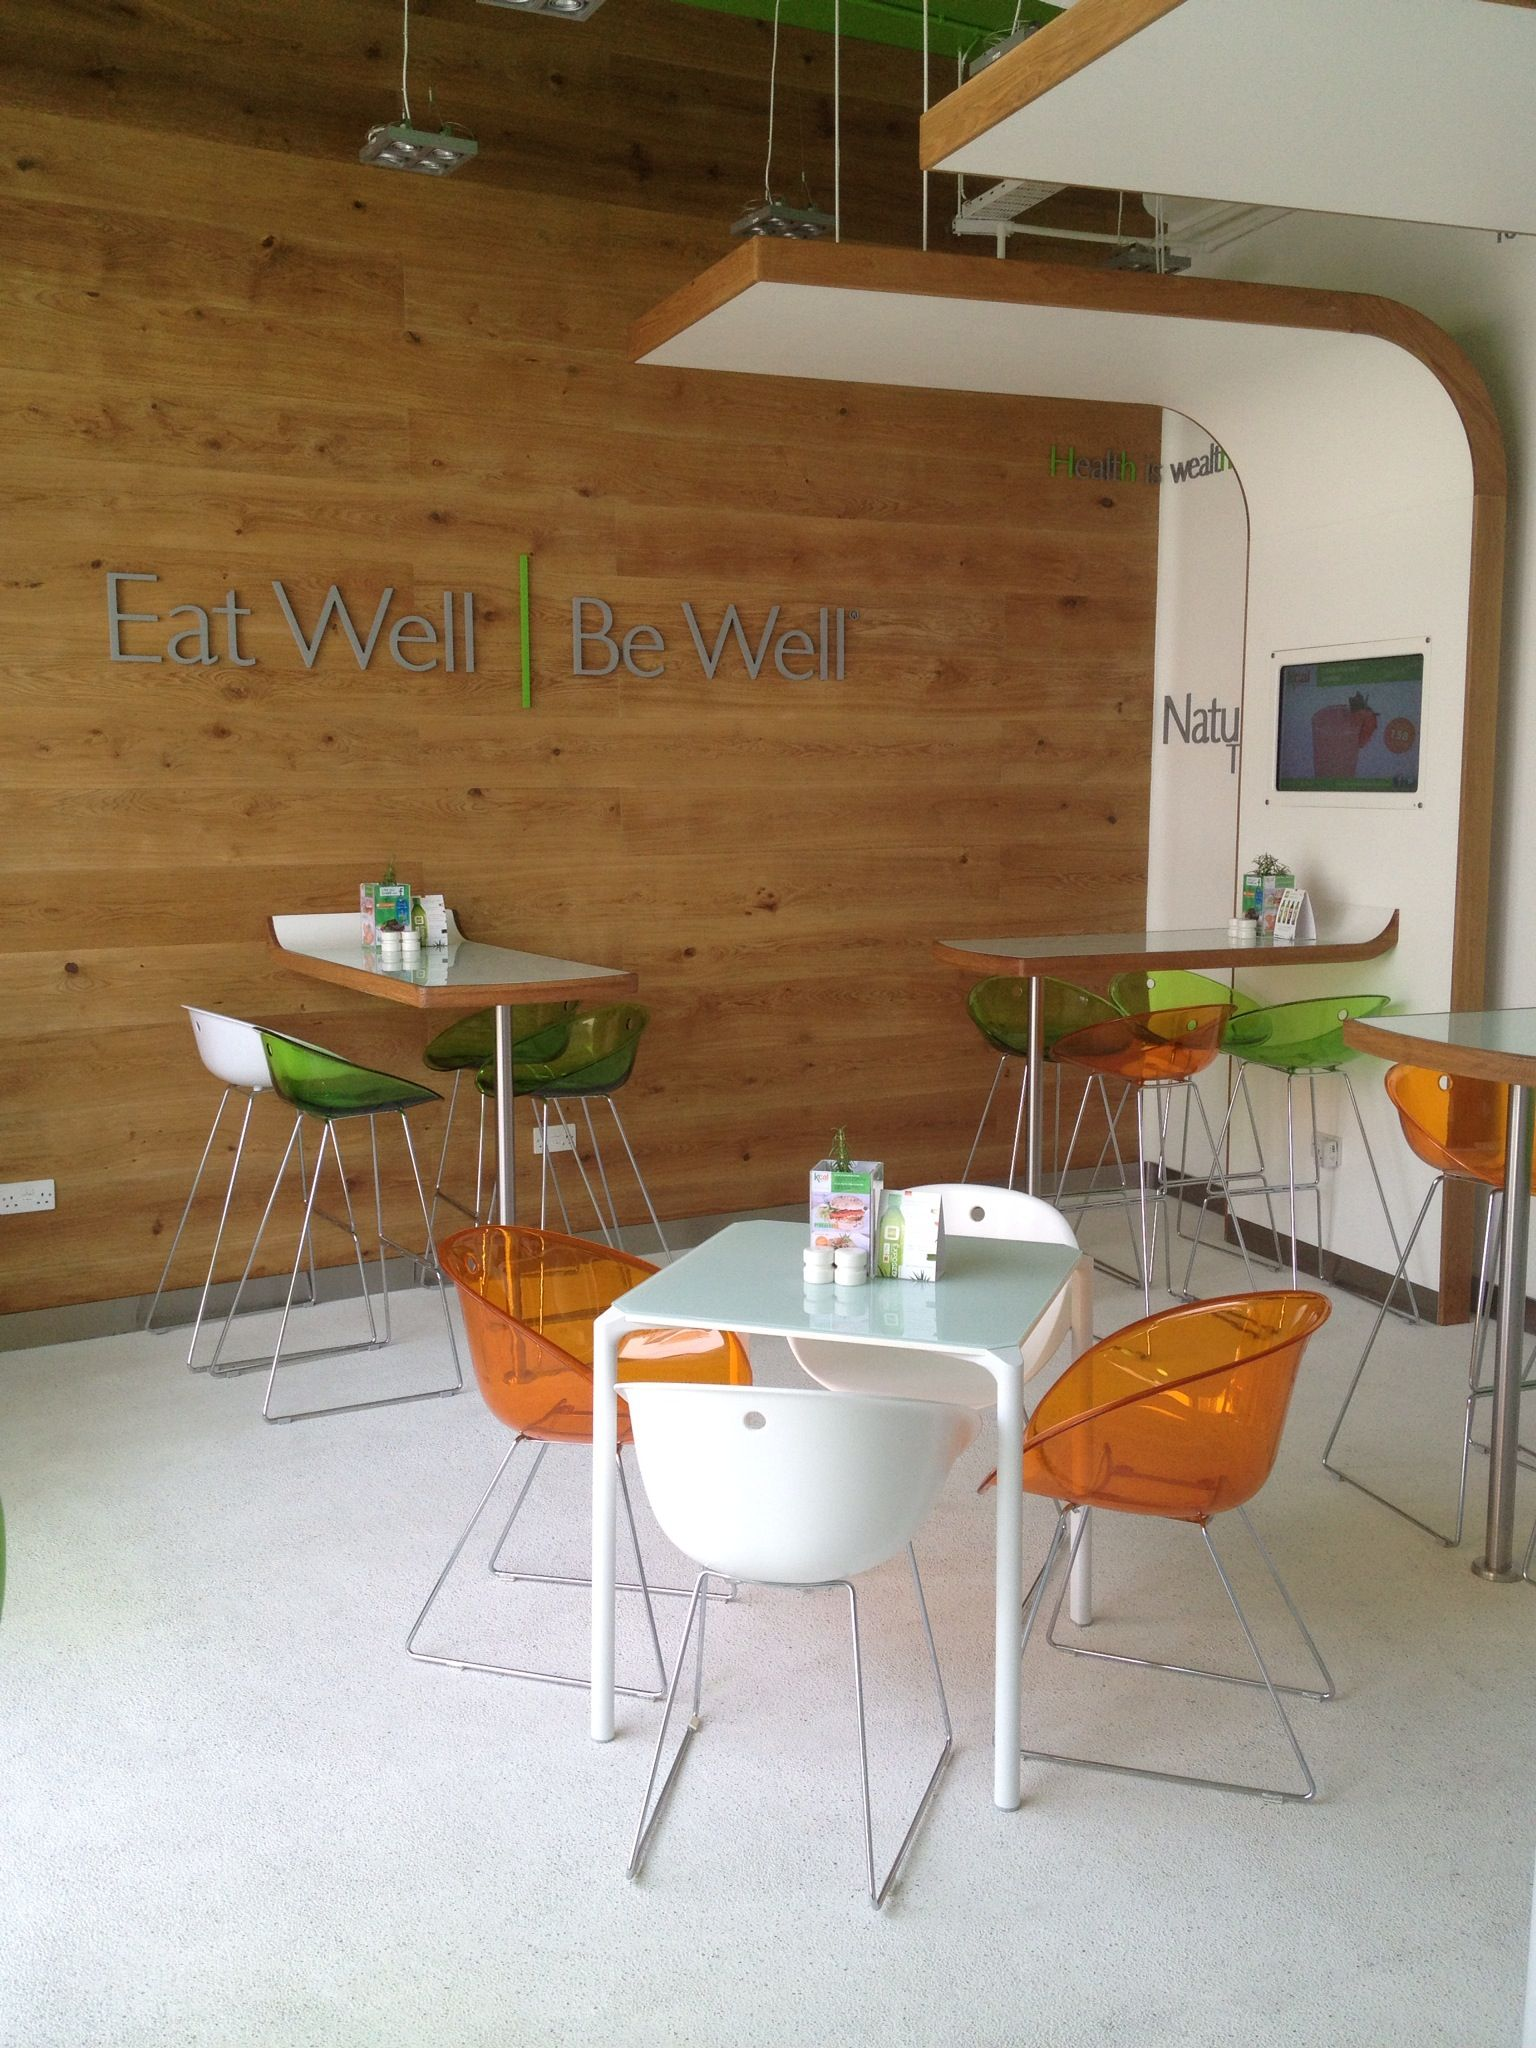 New KCAL Cafe Opens In Business Bay Dubai Welcoming Guests To Experience Healthy And Delicious Fast